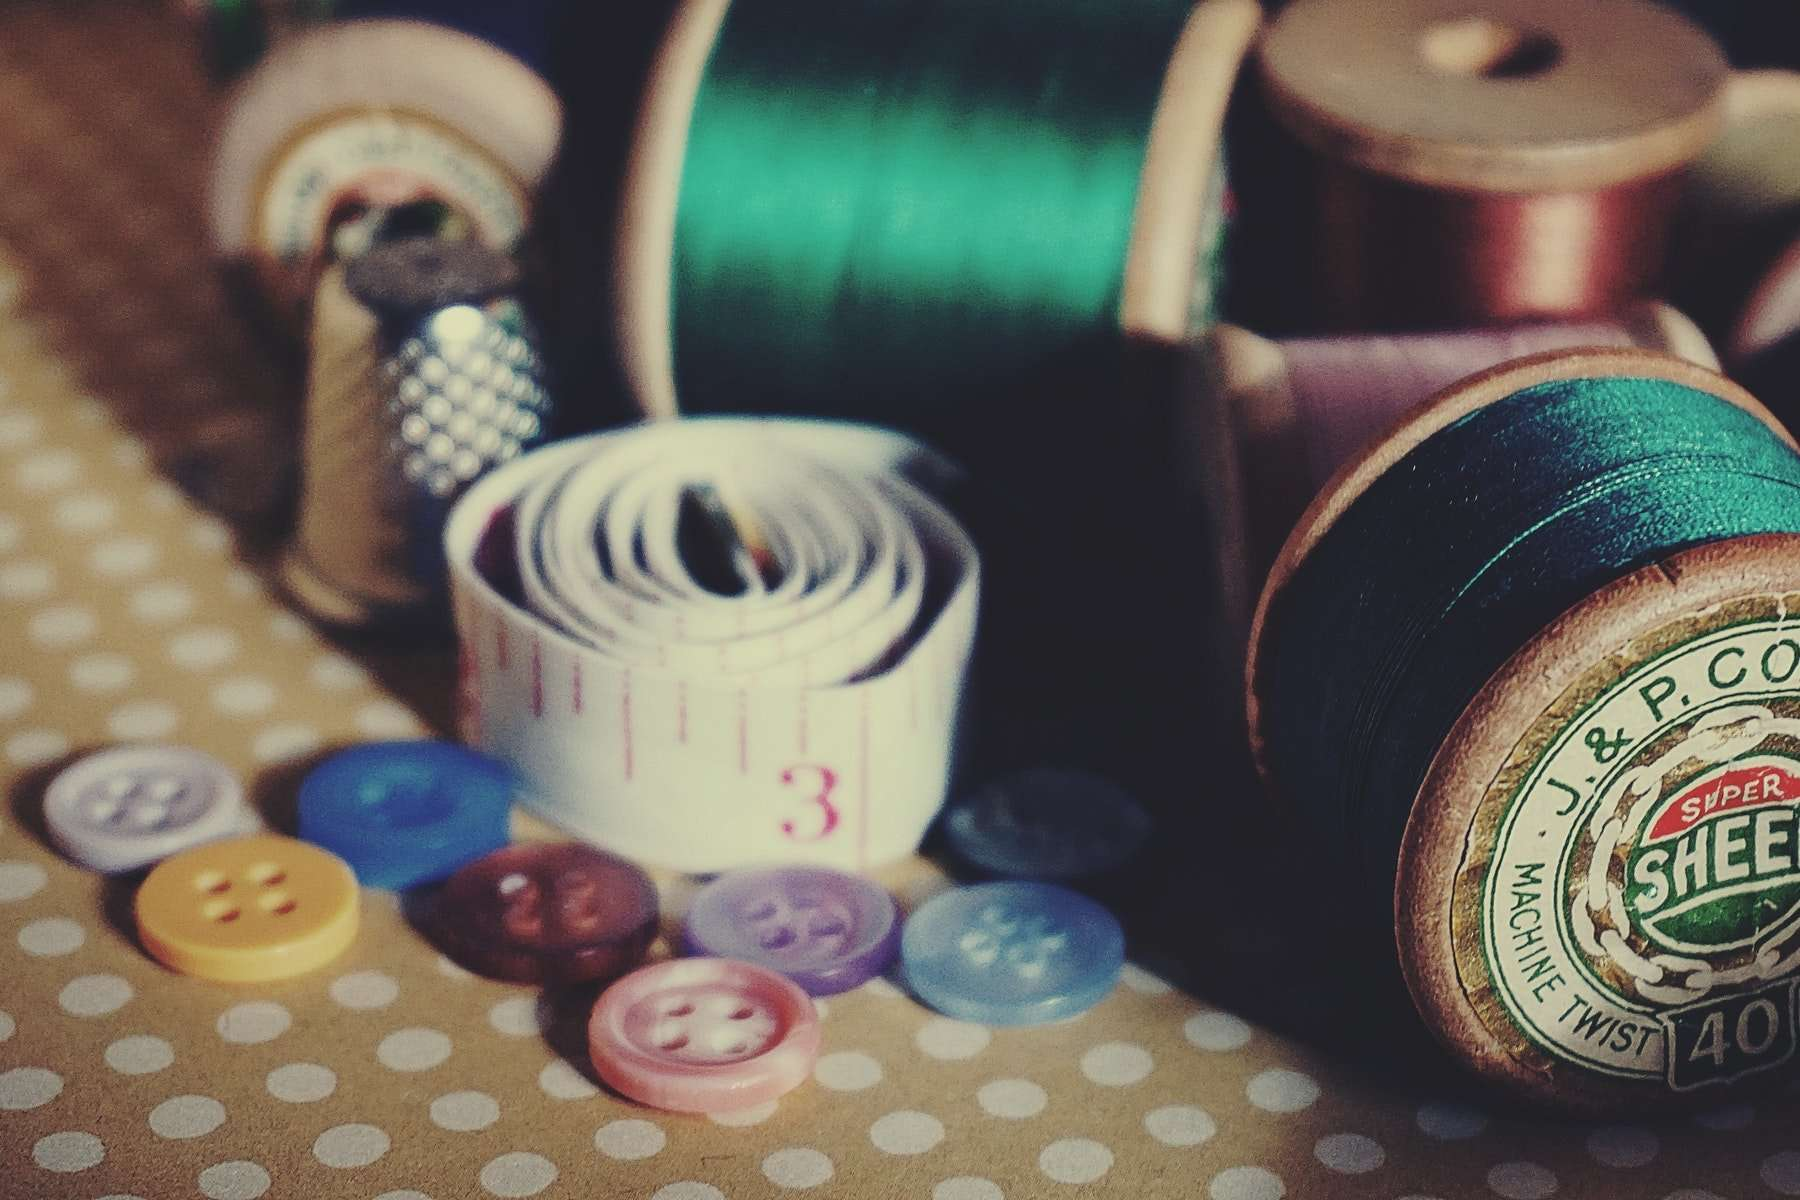 Sewing Kit Close Up Photography 1855203